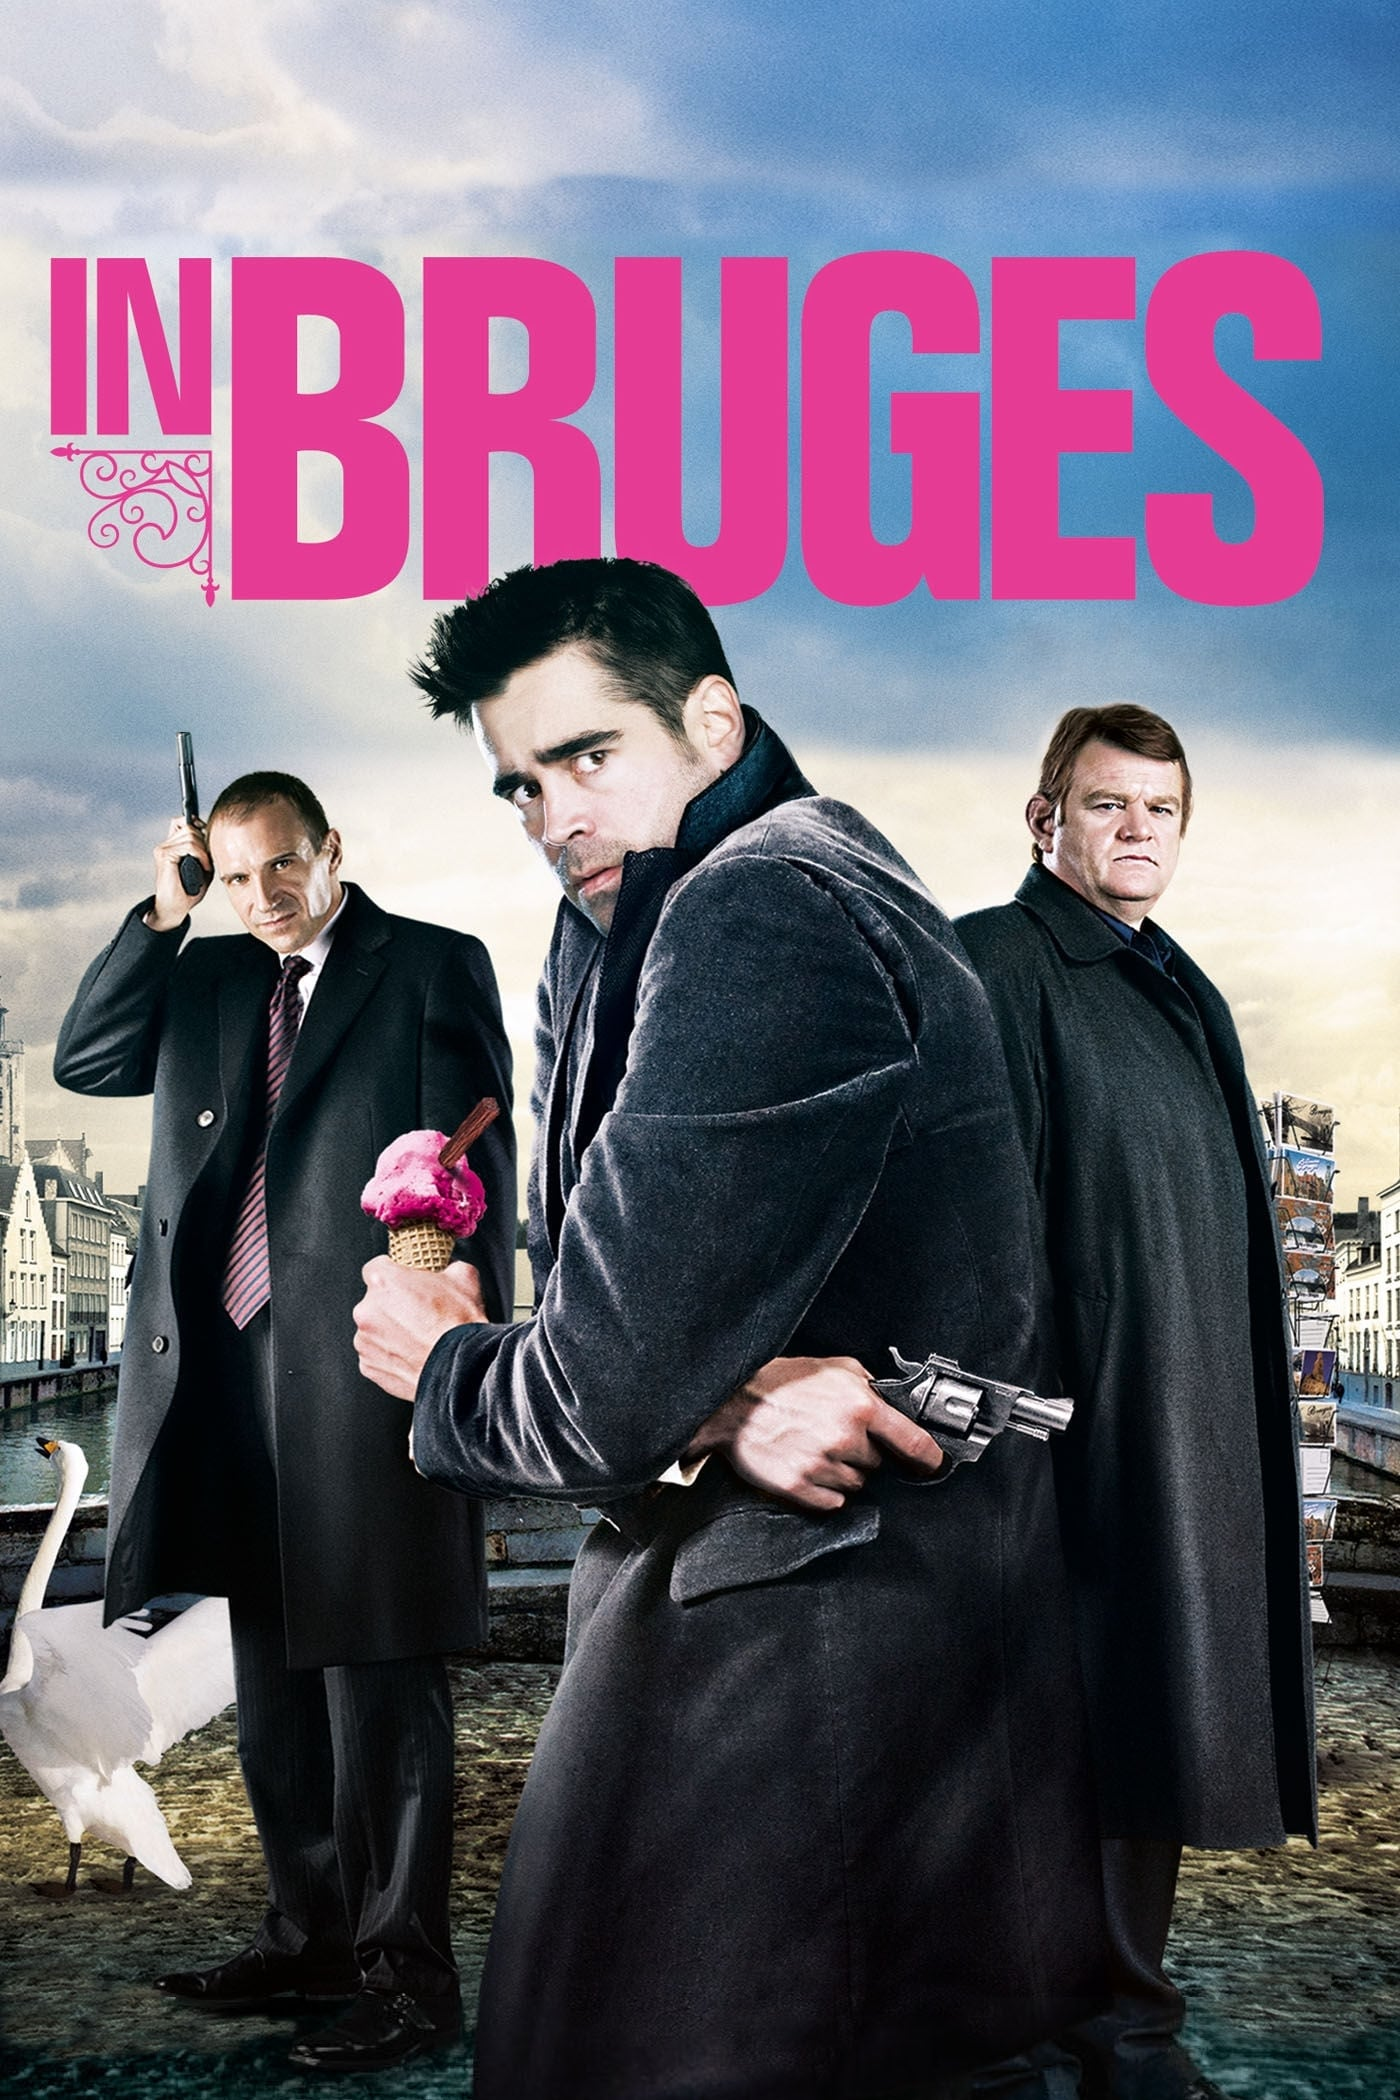 In Bruges: The Best Movies to Watch in Dubai